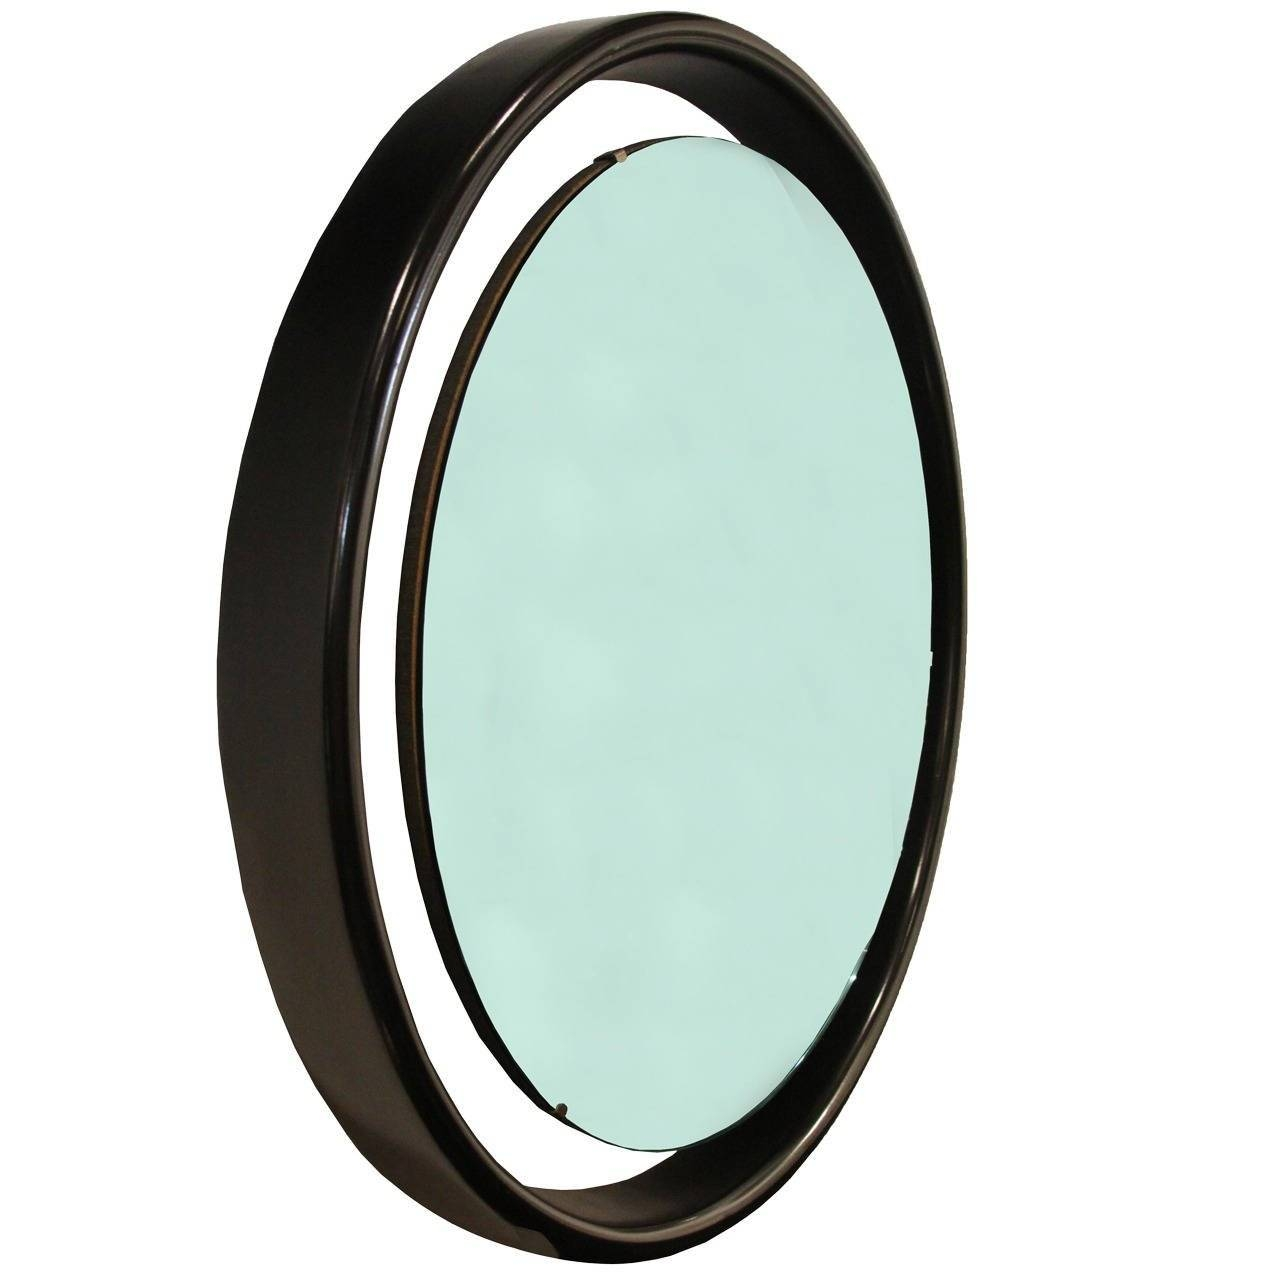 Floating Round Mirror With Black Frame For Sale At 1Stdibs inside Round Black Mirrors (Image 9 of 25)